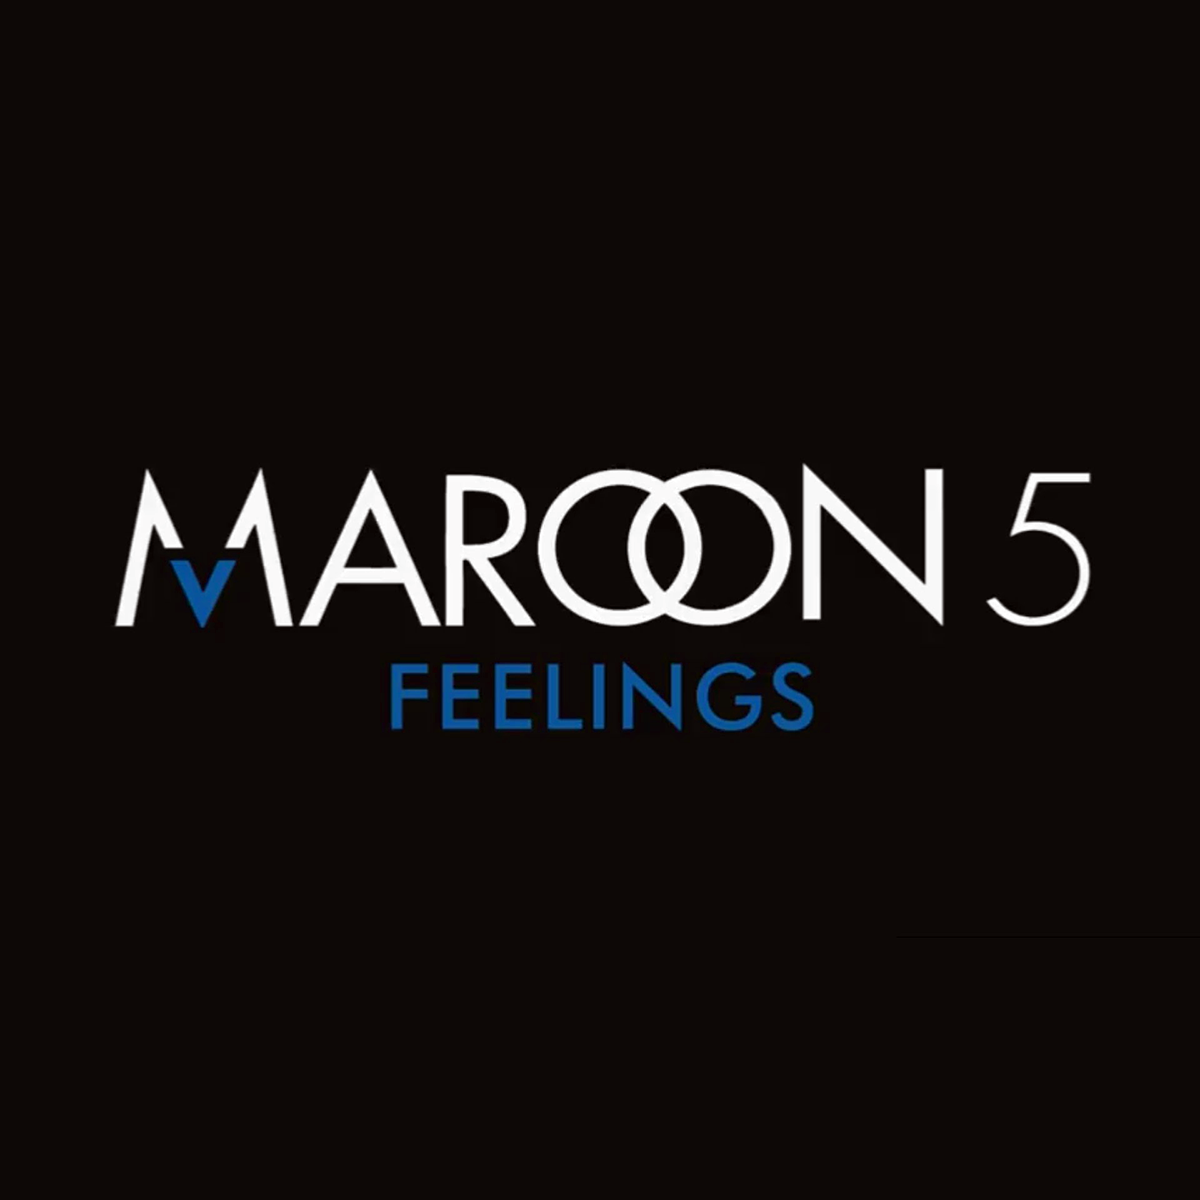 Maroon 5 feelings (audio) youtube.